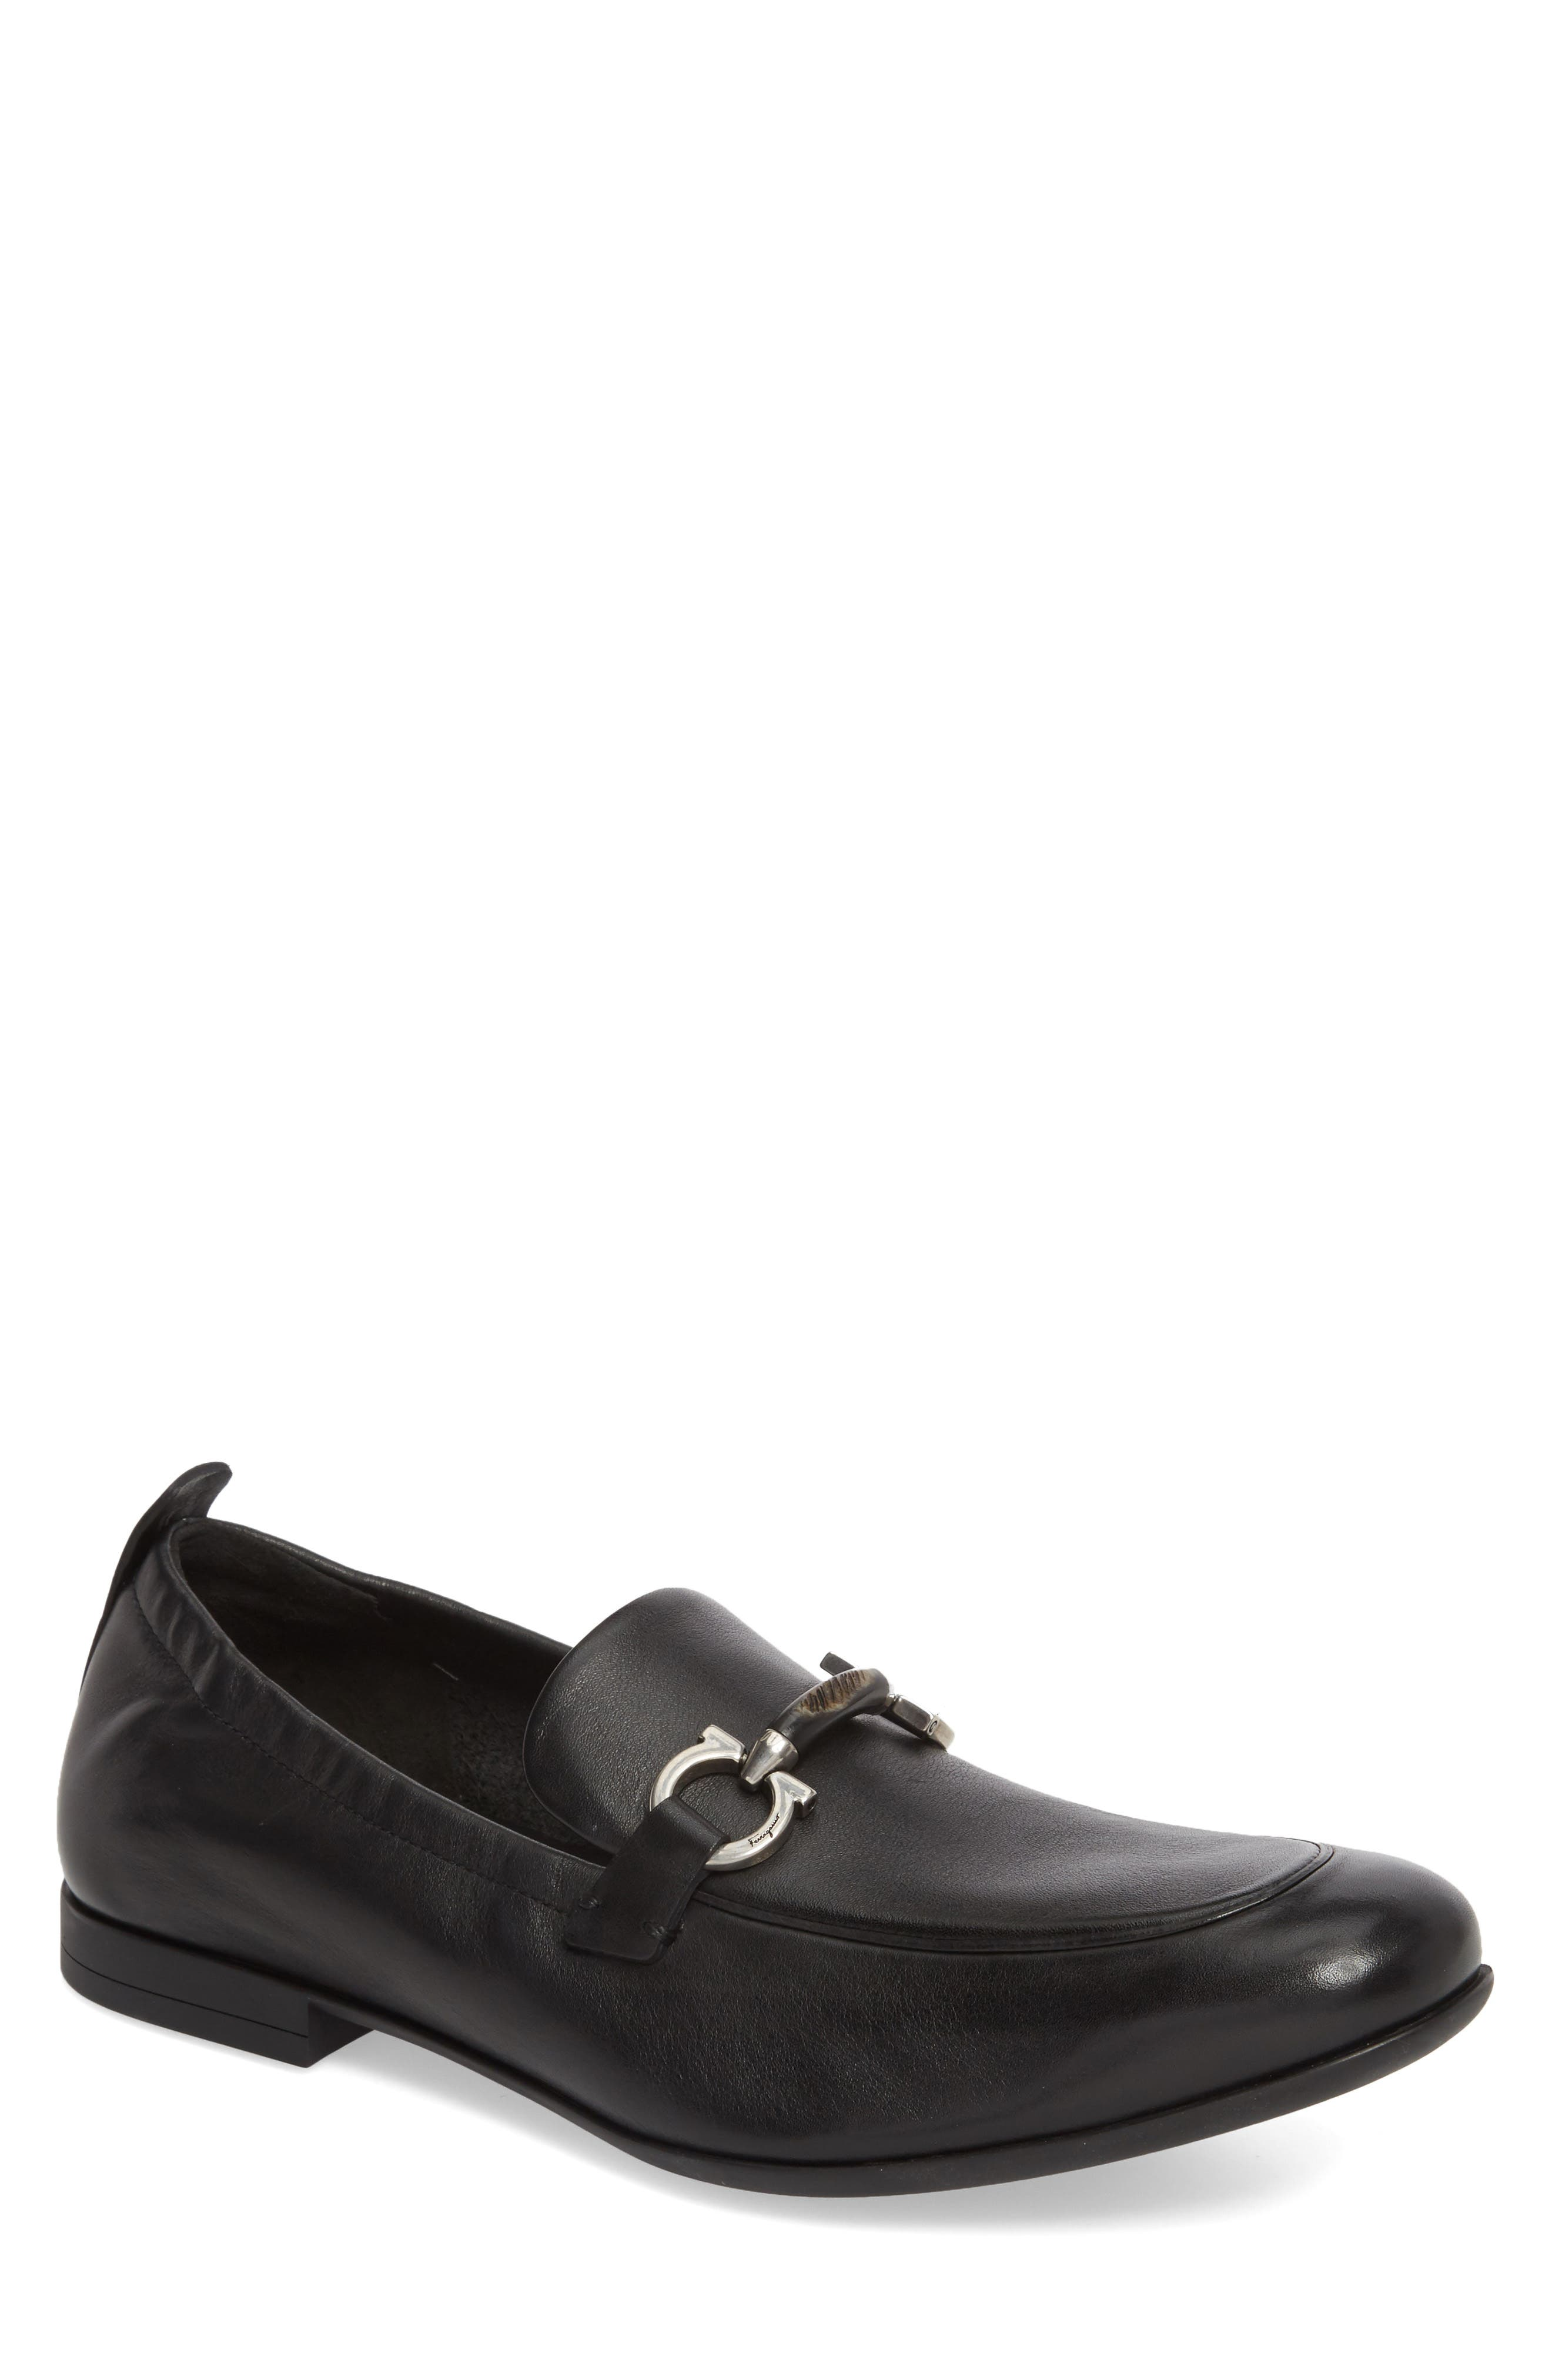 Celso Bit Loafer,                             Main thumbnail 1, color,                             Nero